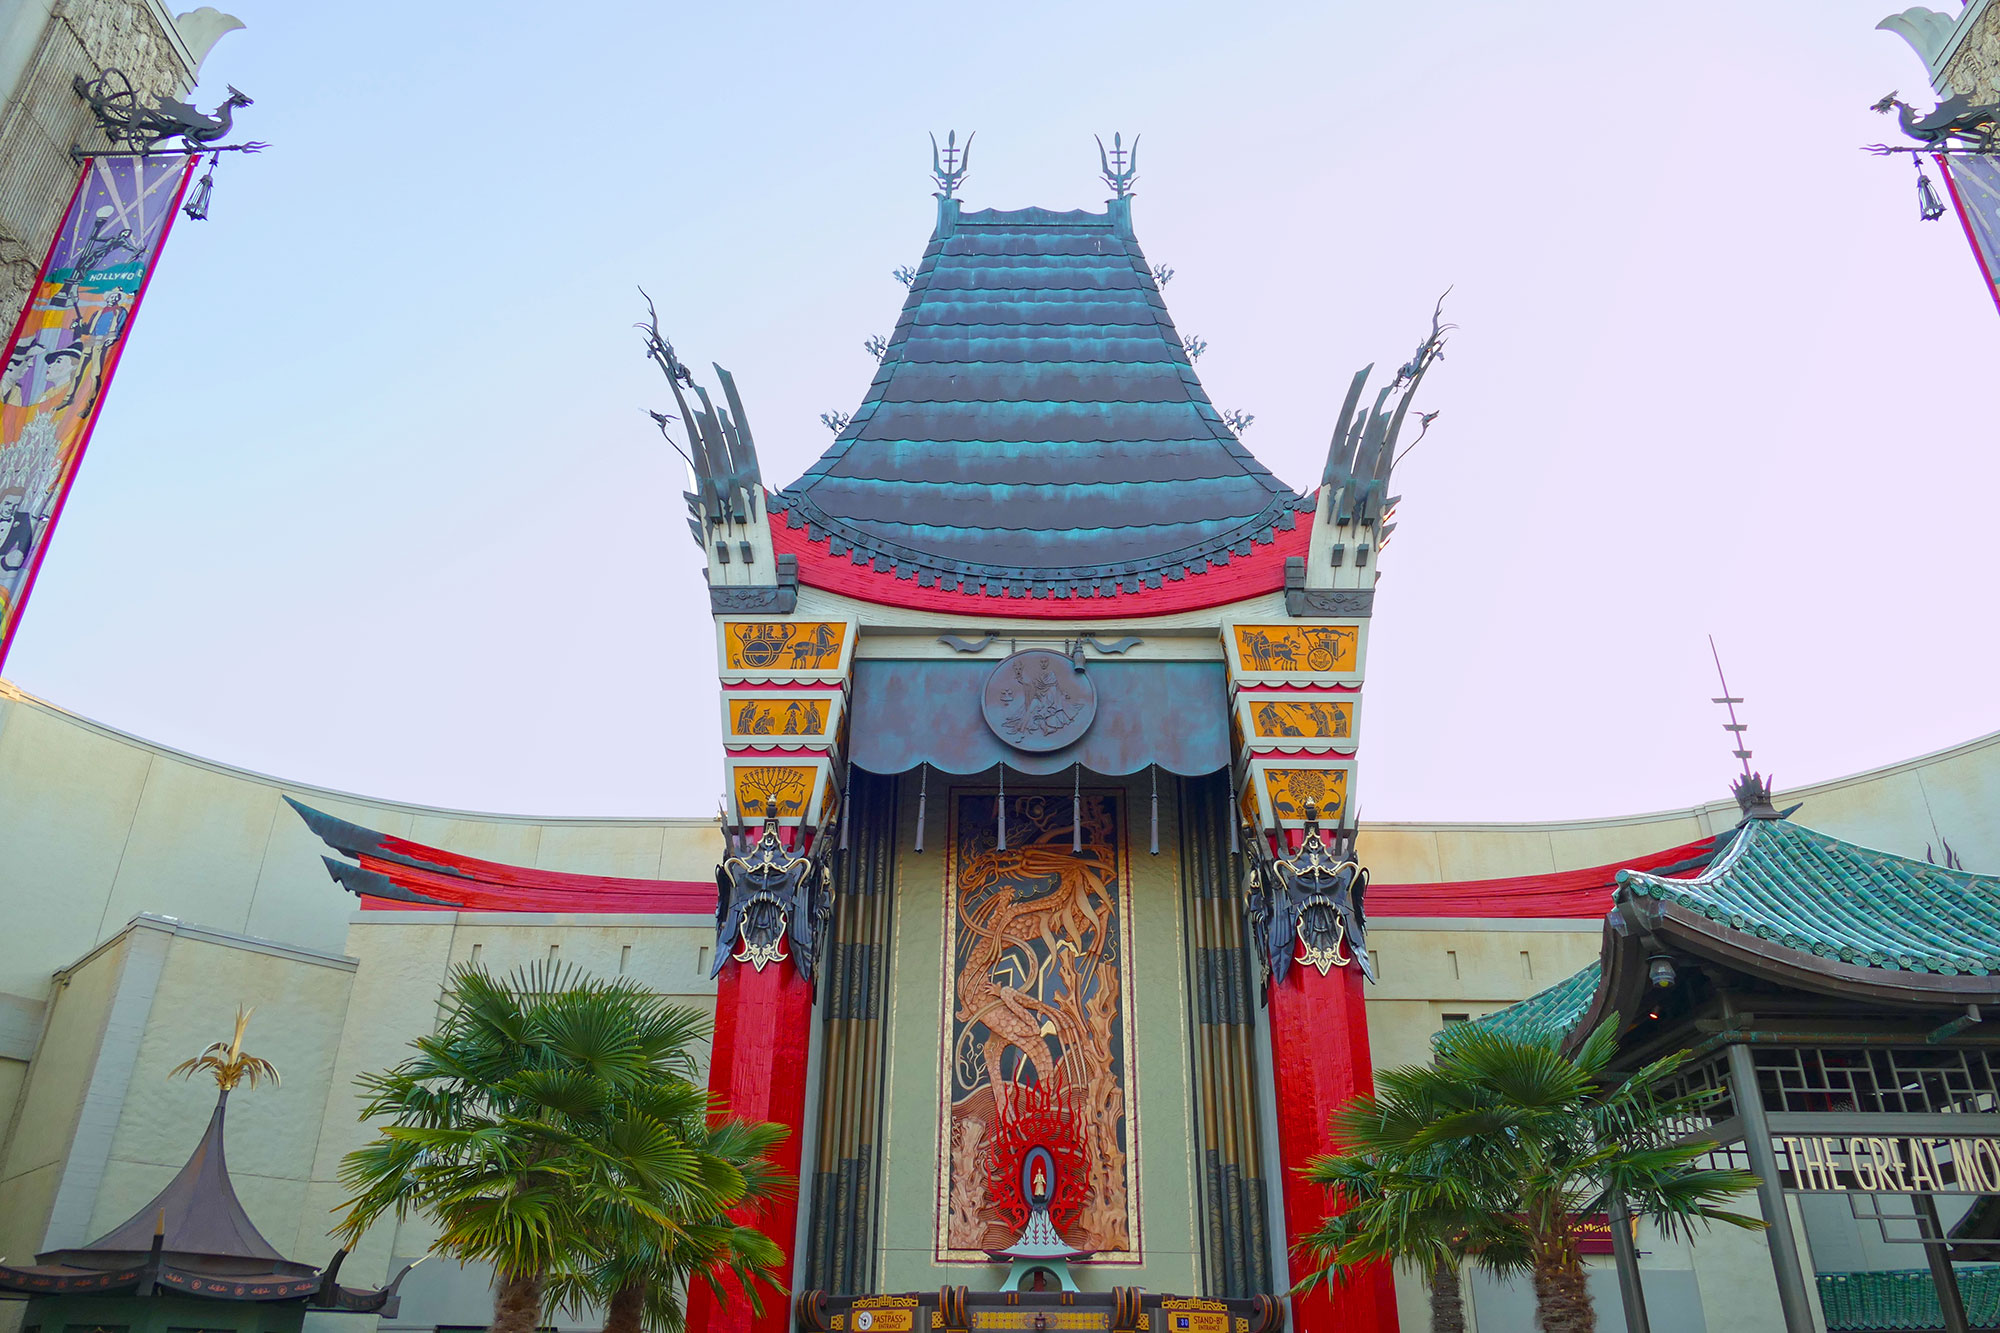 A first (and last) visit to Disney's Hollywood Studios as it is now | PassPorter.com